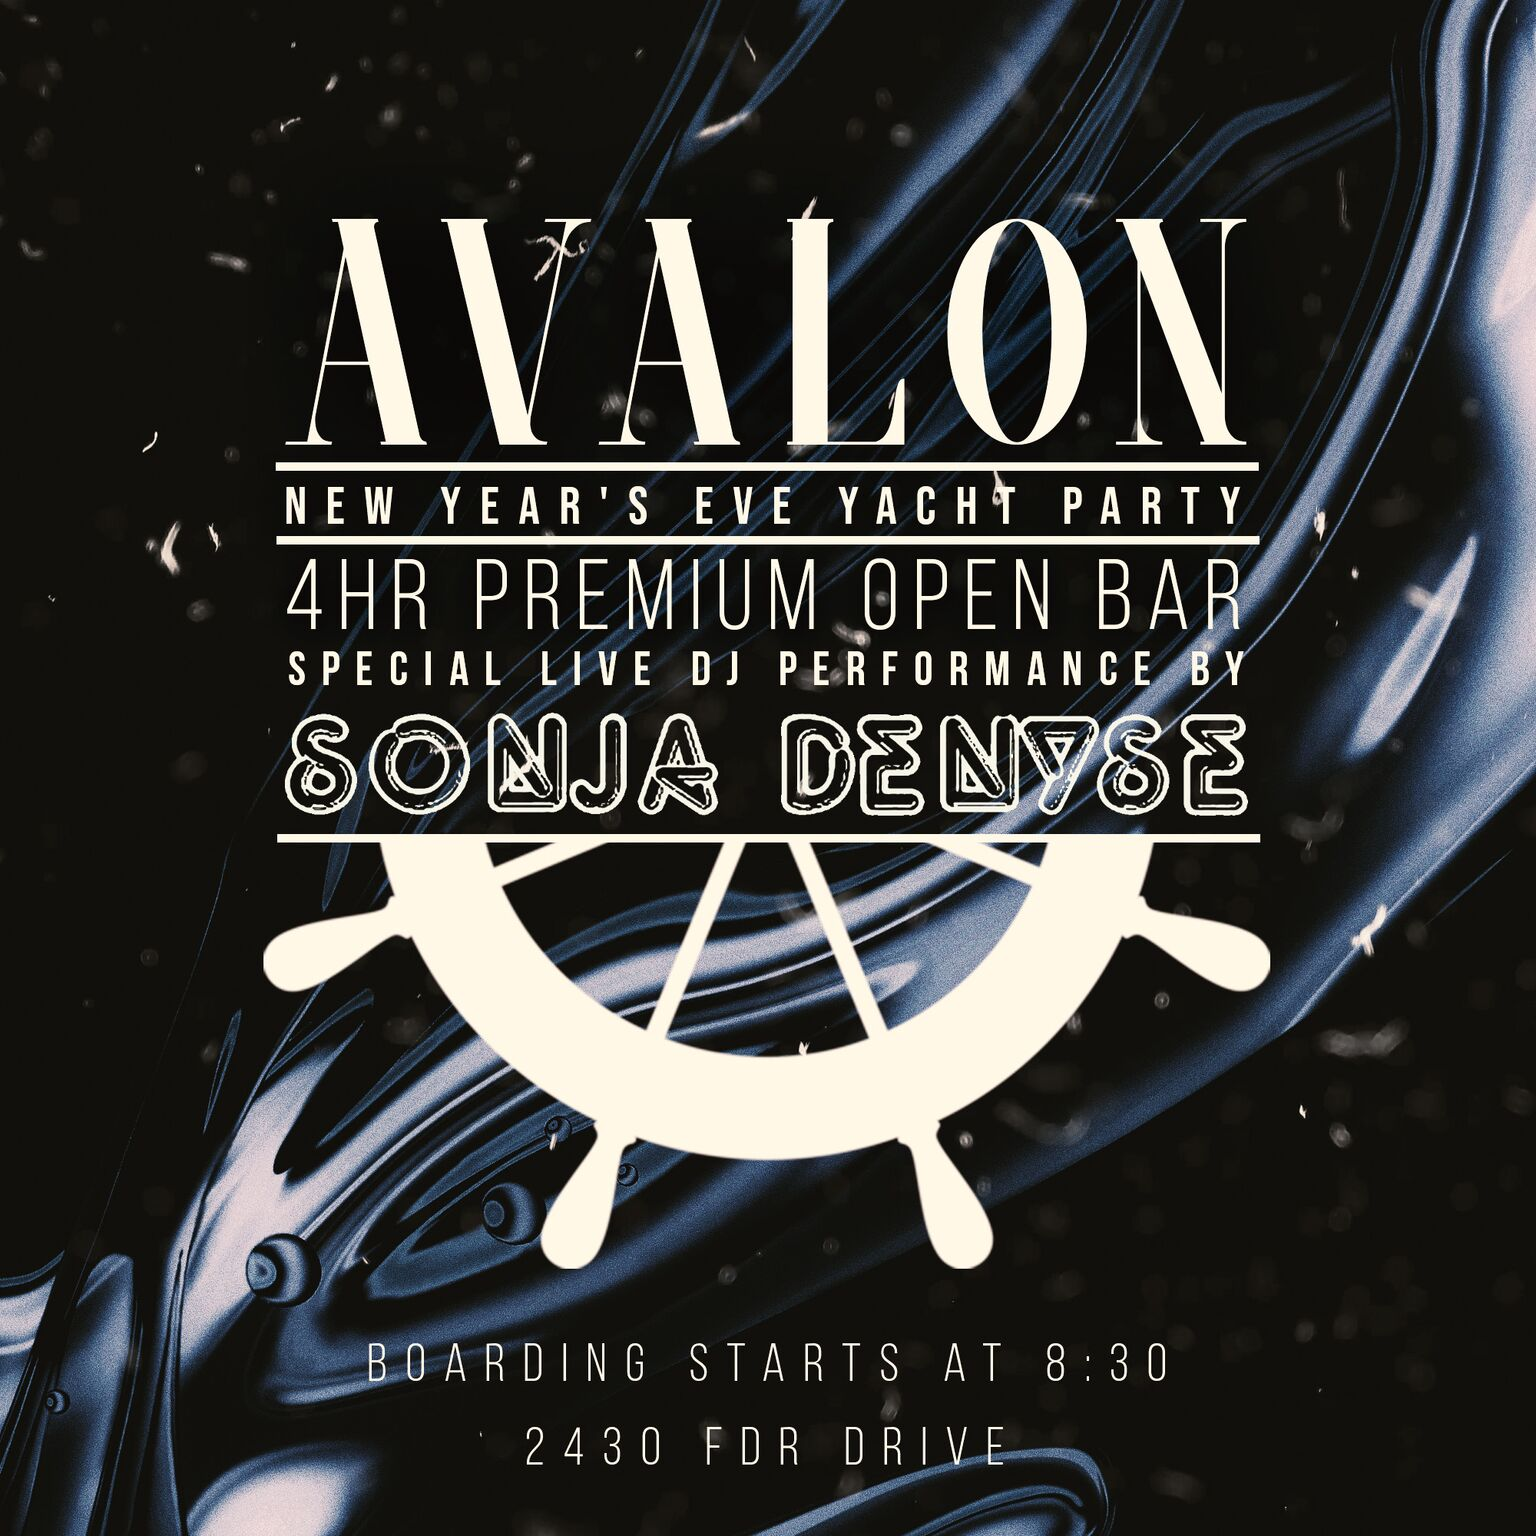 Avalon Yacht New York City New Years Eve Parties Buy